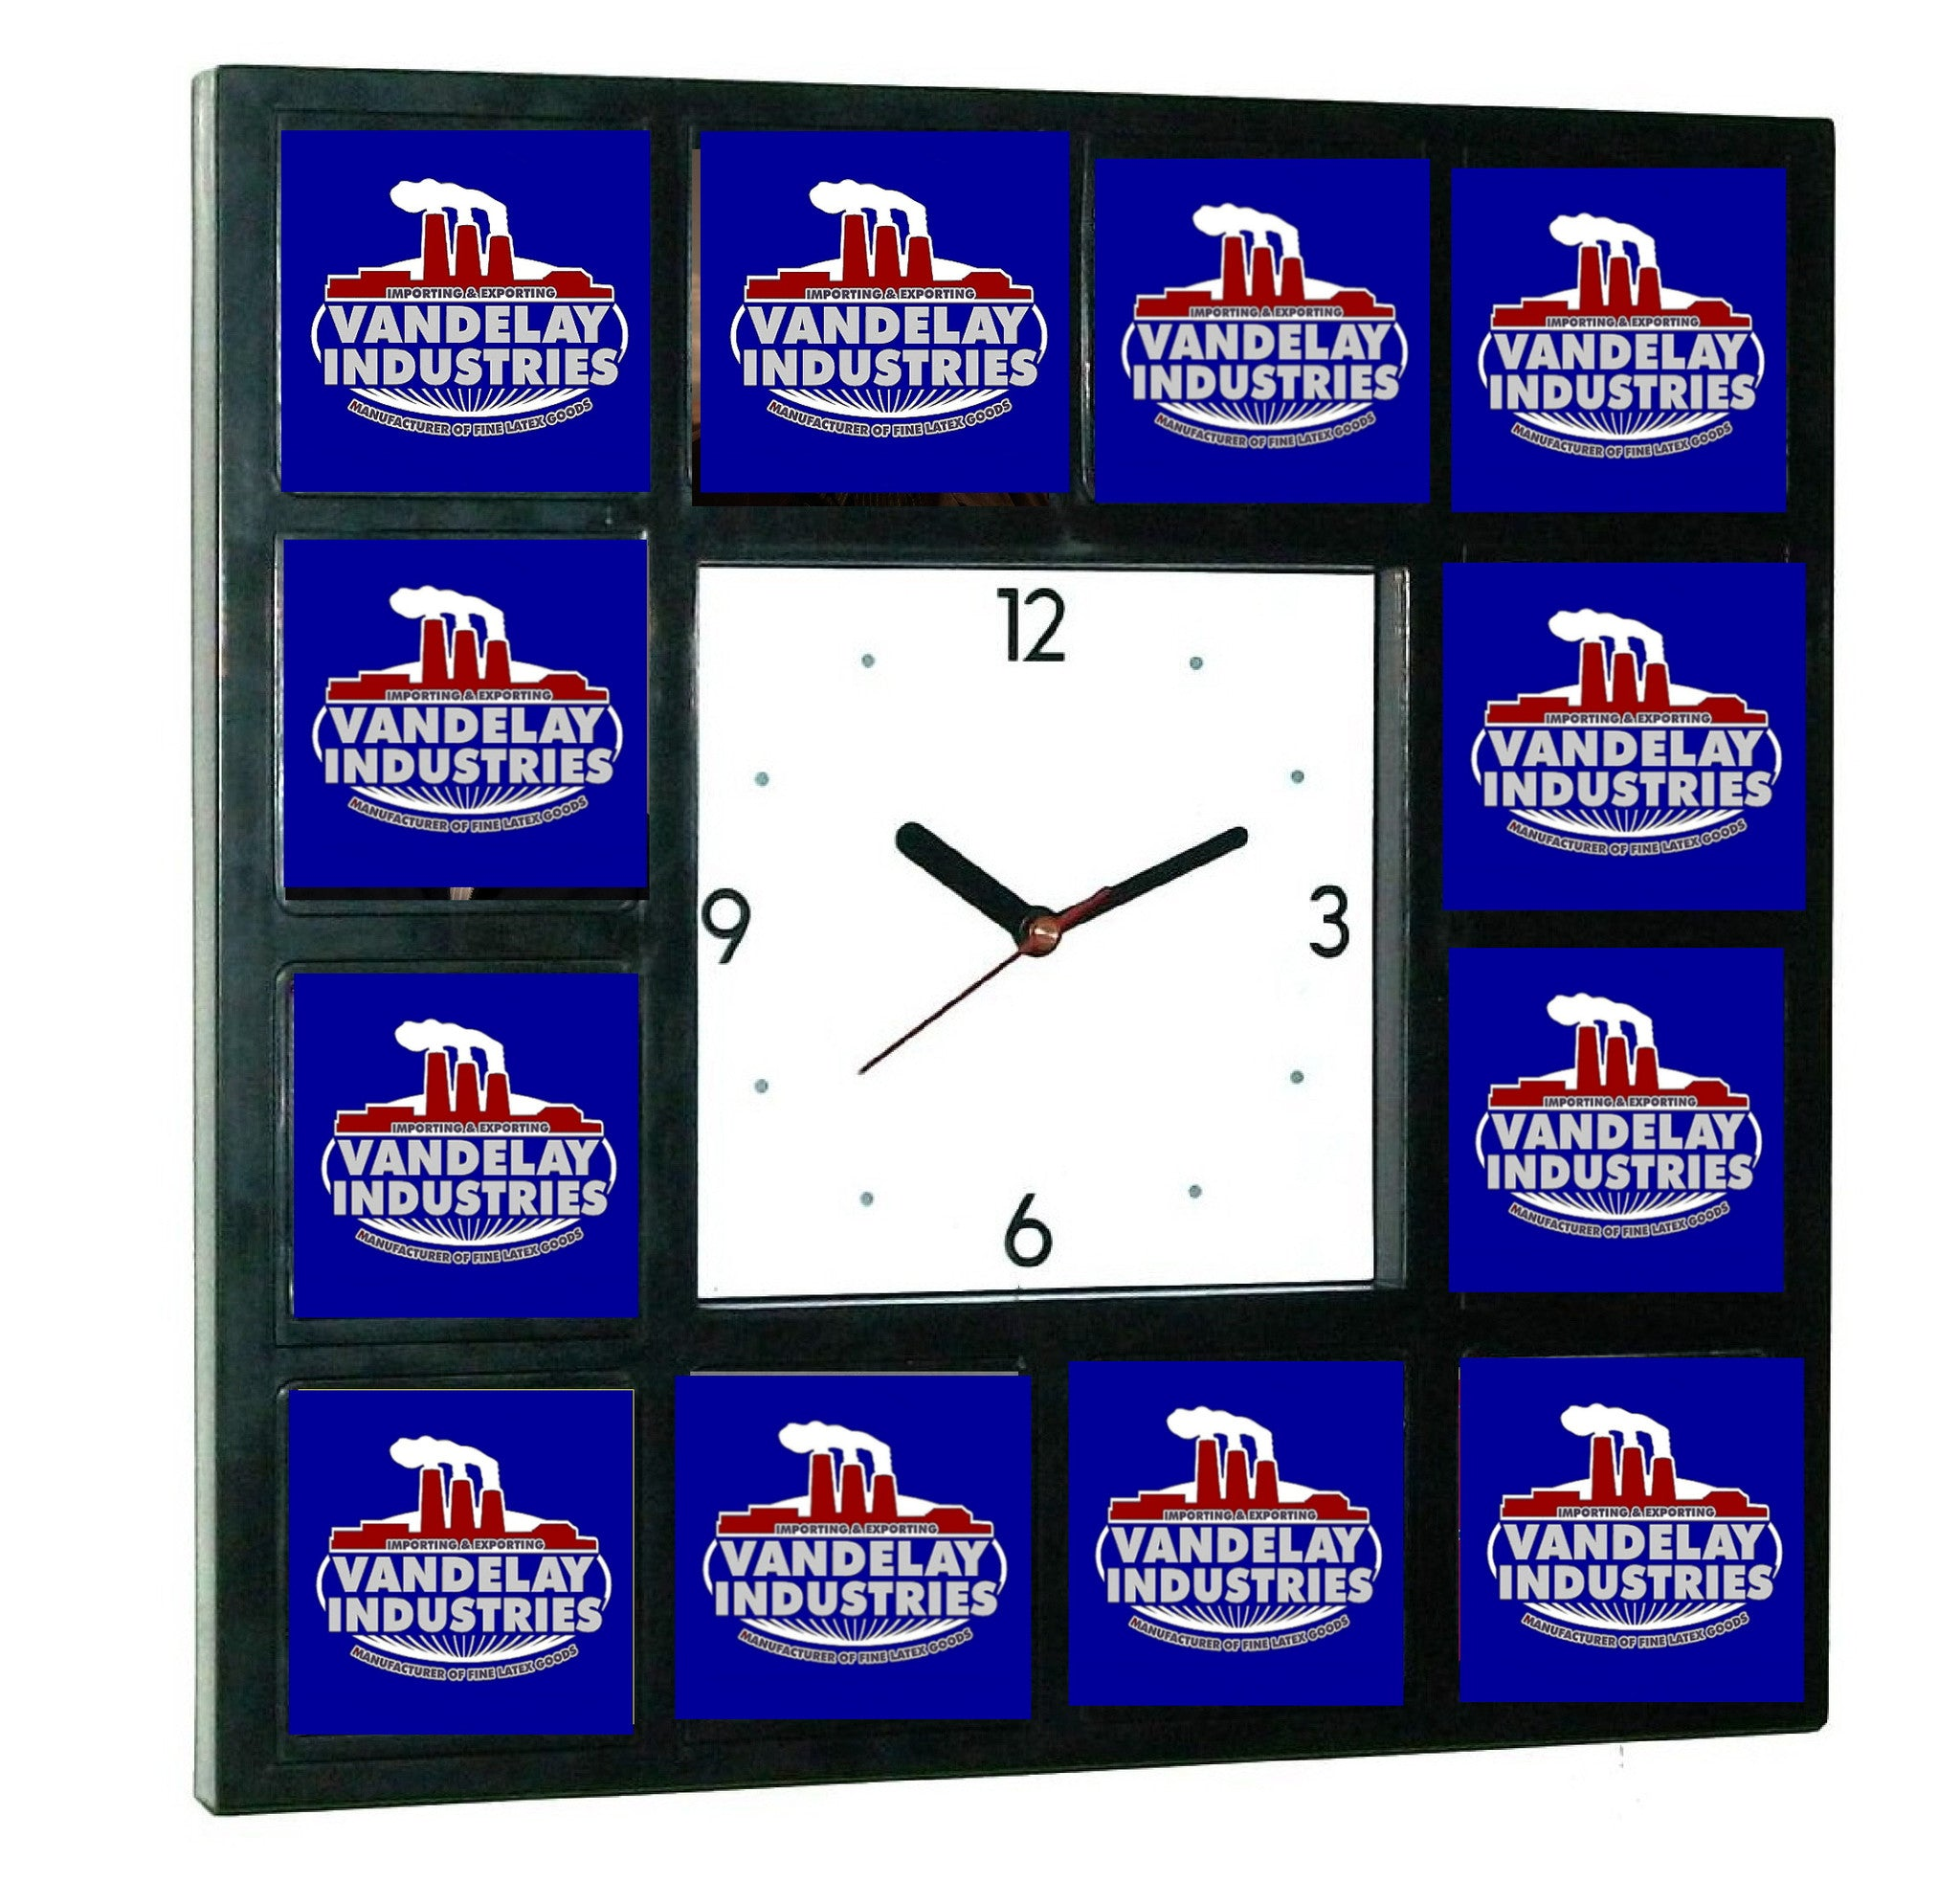 Seinfeld George Castanza Vandelay Industries promo around the Clock Big Wall or Desk Clock , TV Memorabilia - Final Score Products, Final Score Products